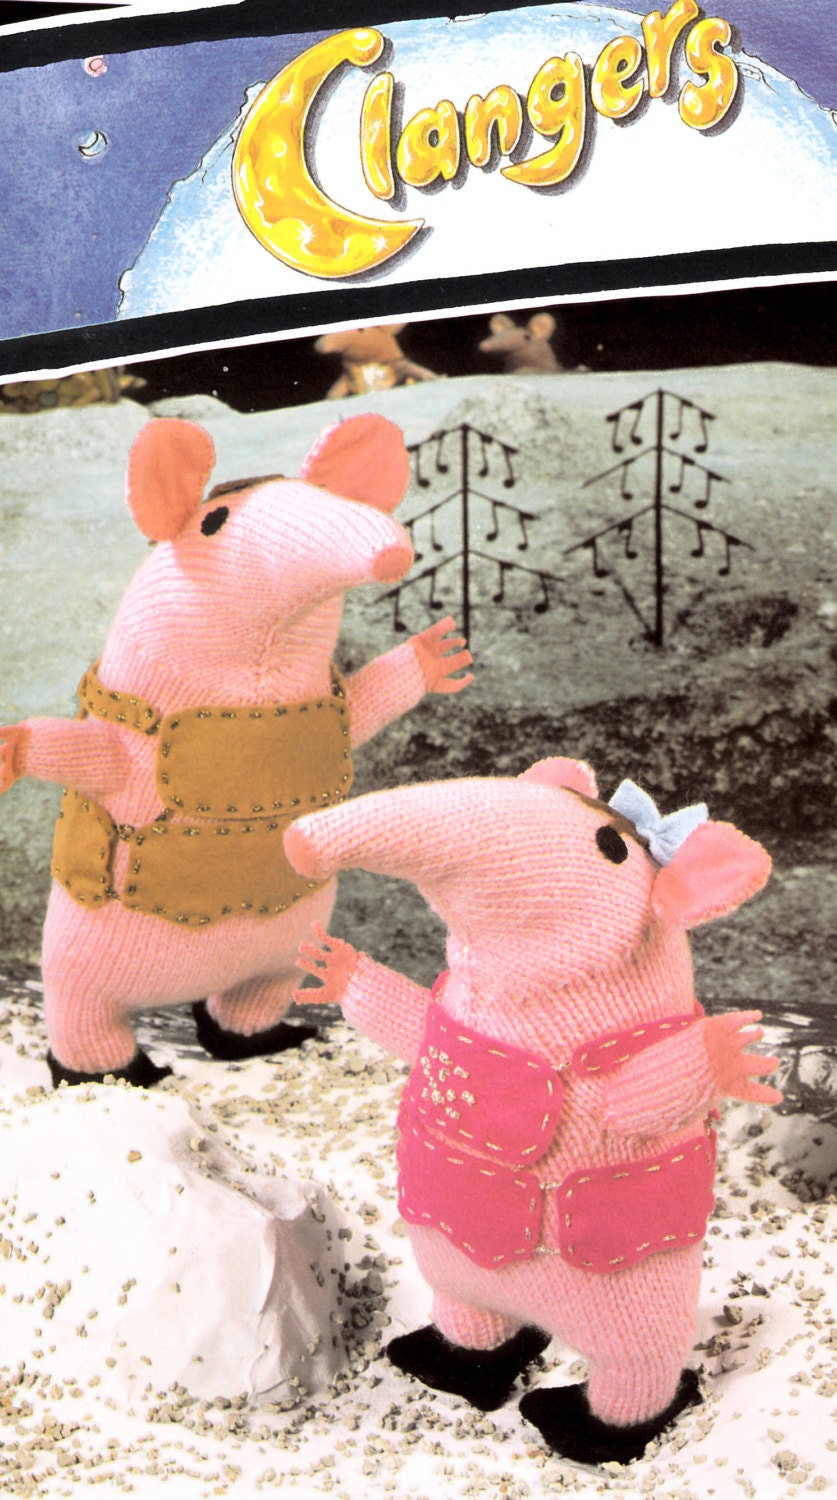 vintage knitting pattern PDF file for The Clangers retro tv